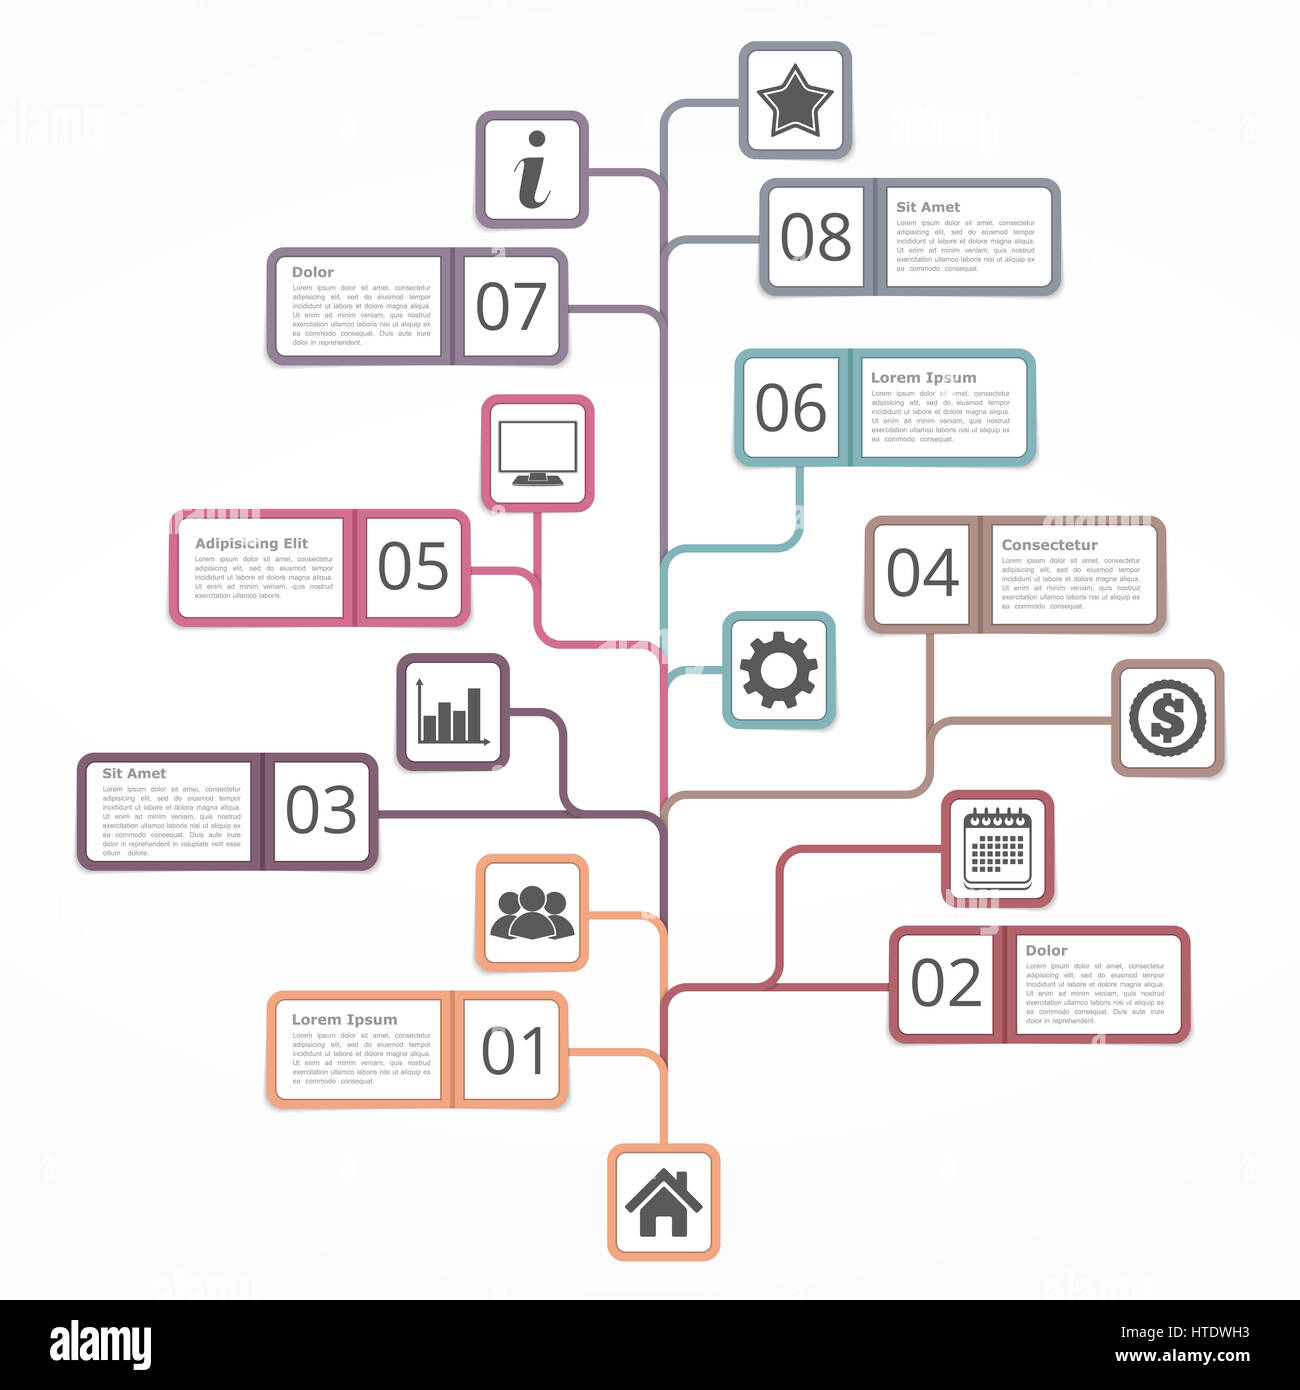 tree diagram template with numbers icons and place for your text, Wiring diagram